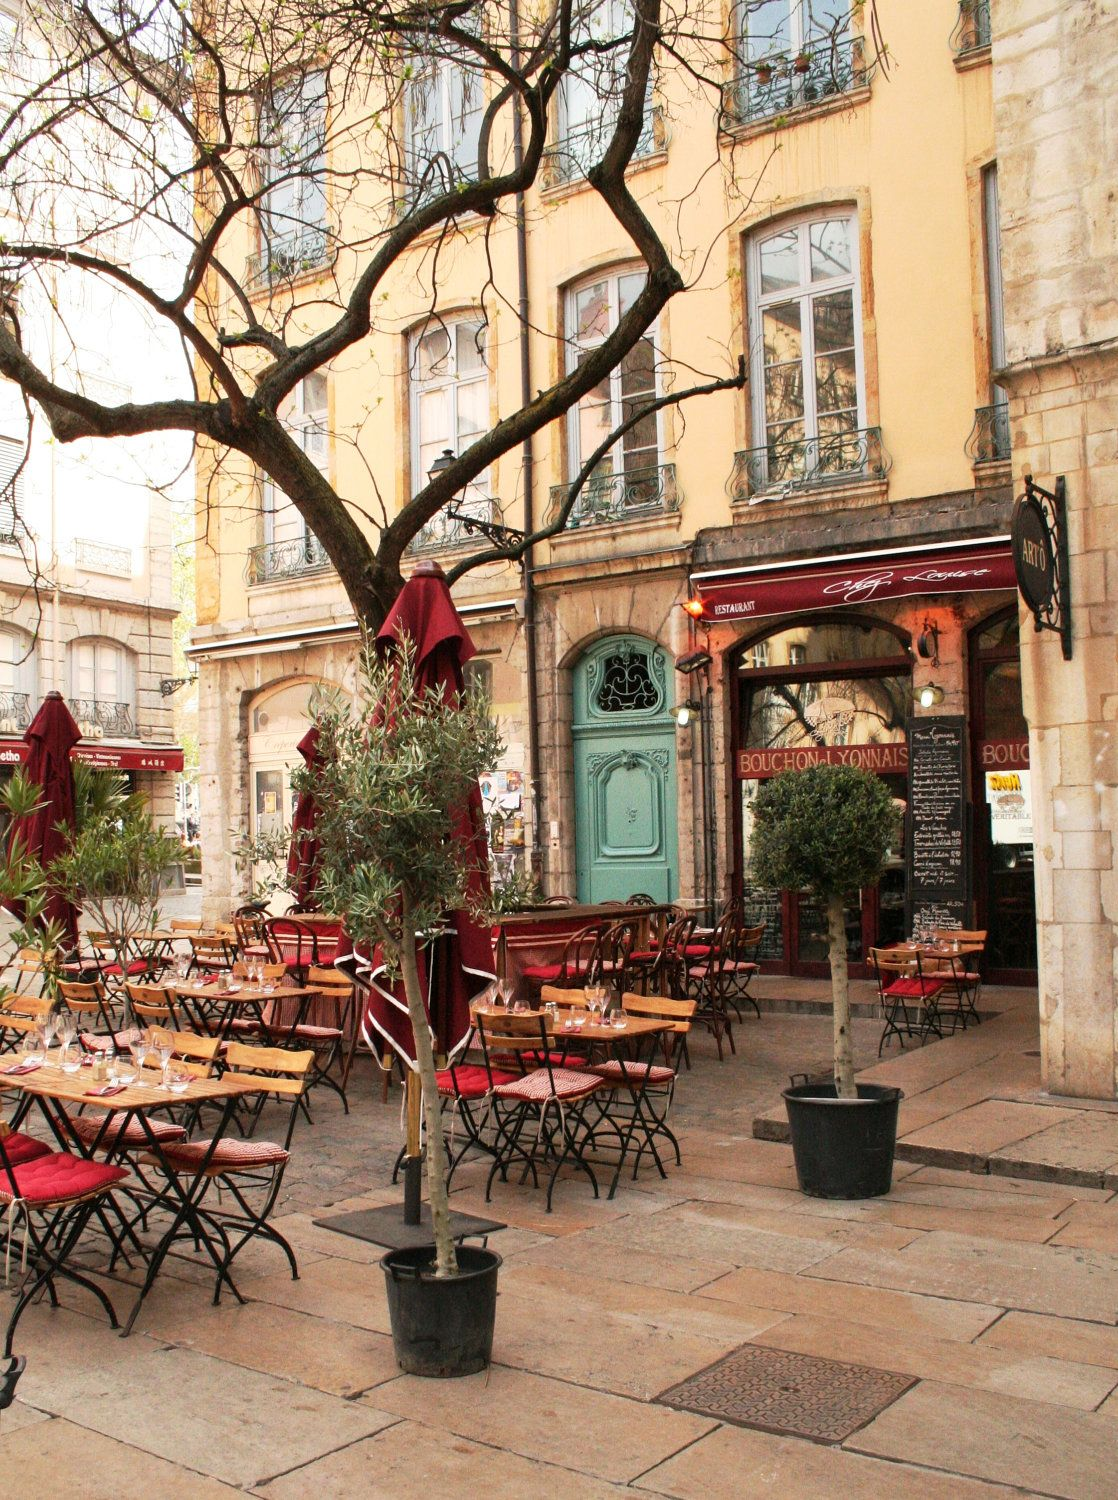 Paris Bistro Chairs Outdoor Blue Bean Bag French Cafe So Loved Eating A Such Quaint Little